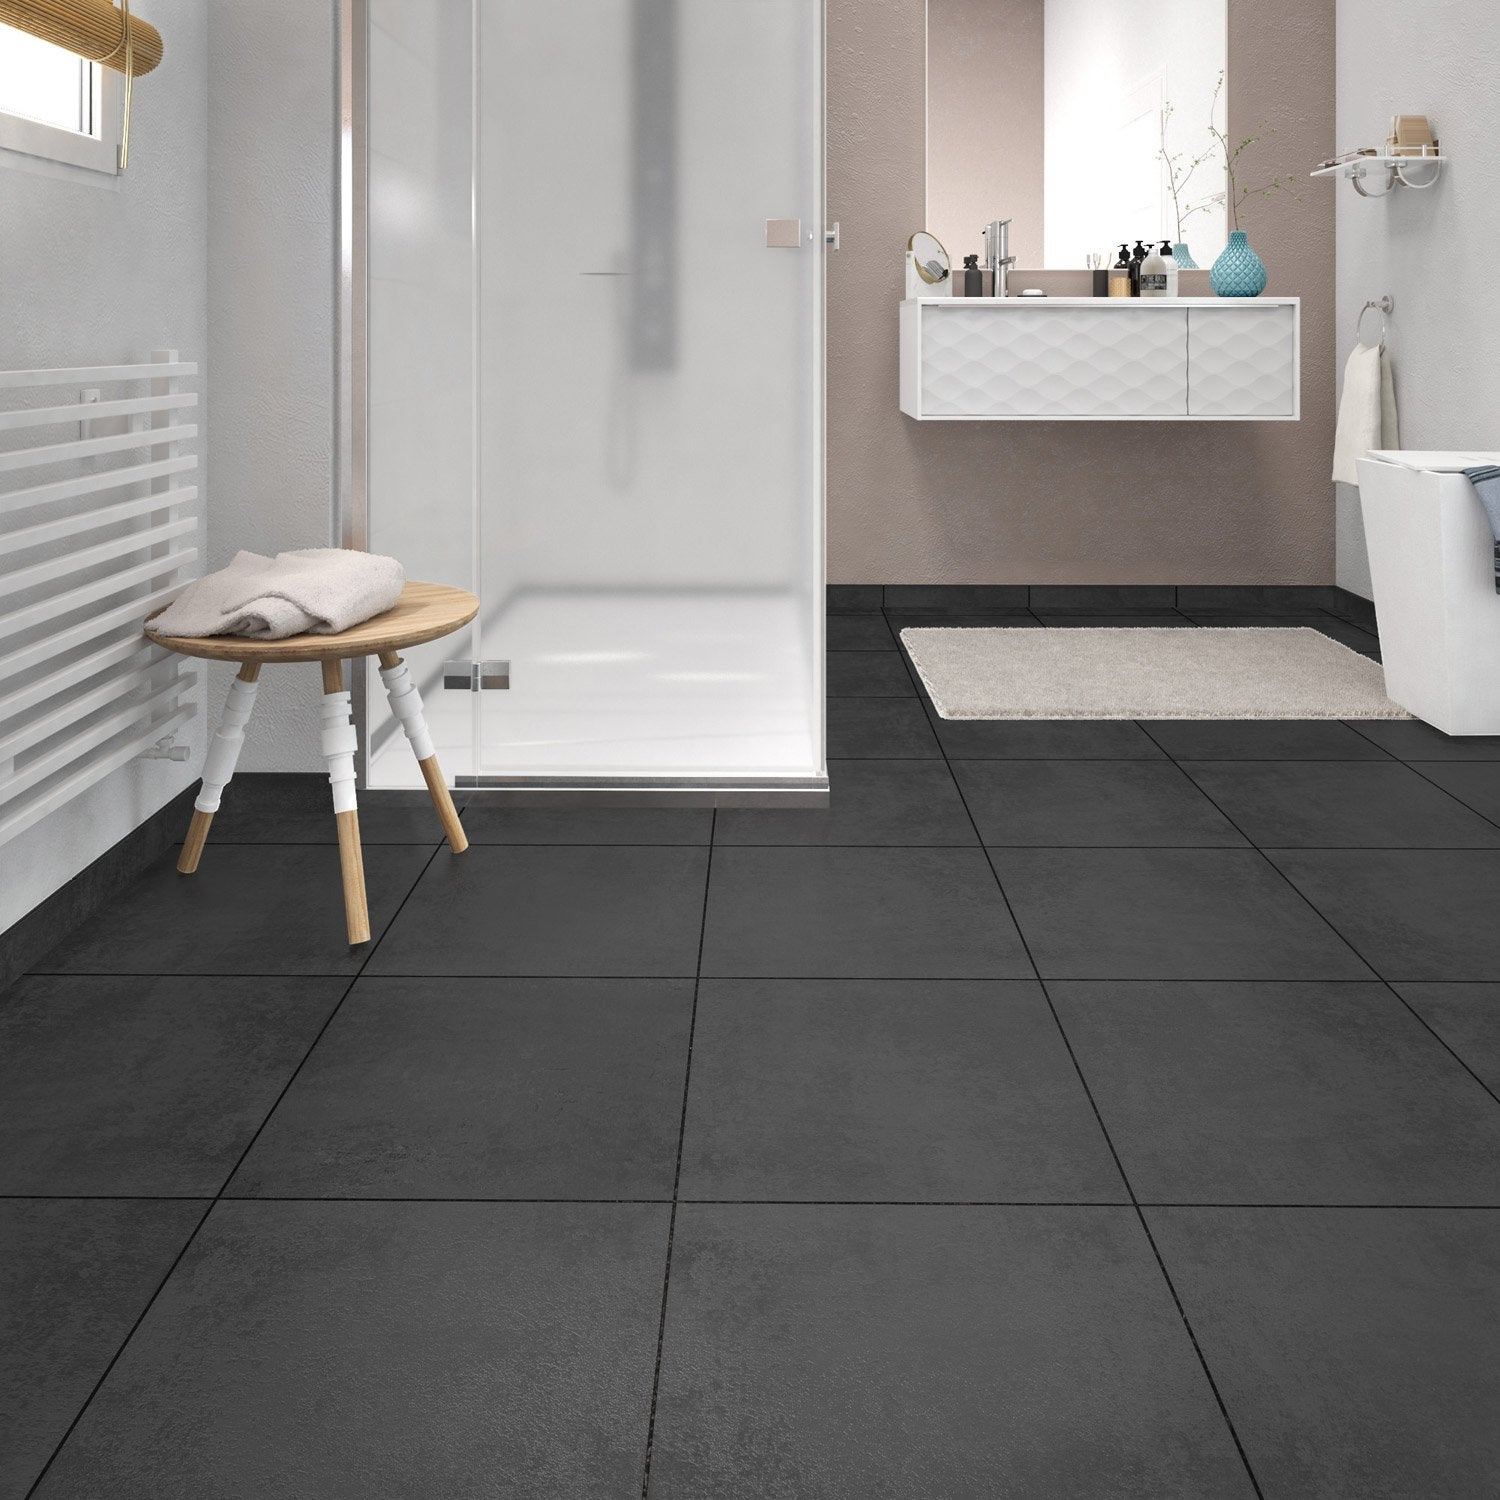 Carrelage noir brillant leroy merlin gallery of cheap for Carrelage salle de bain noir